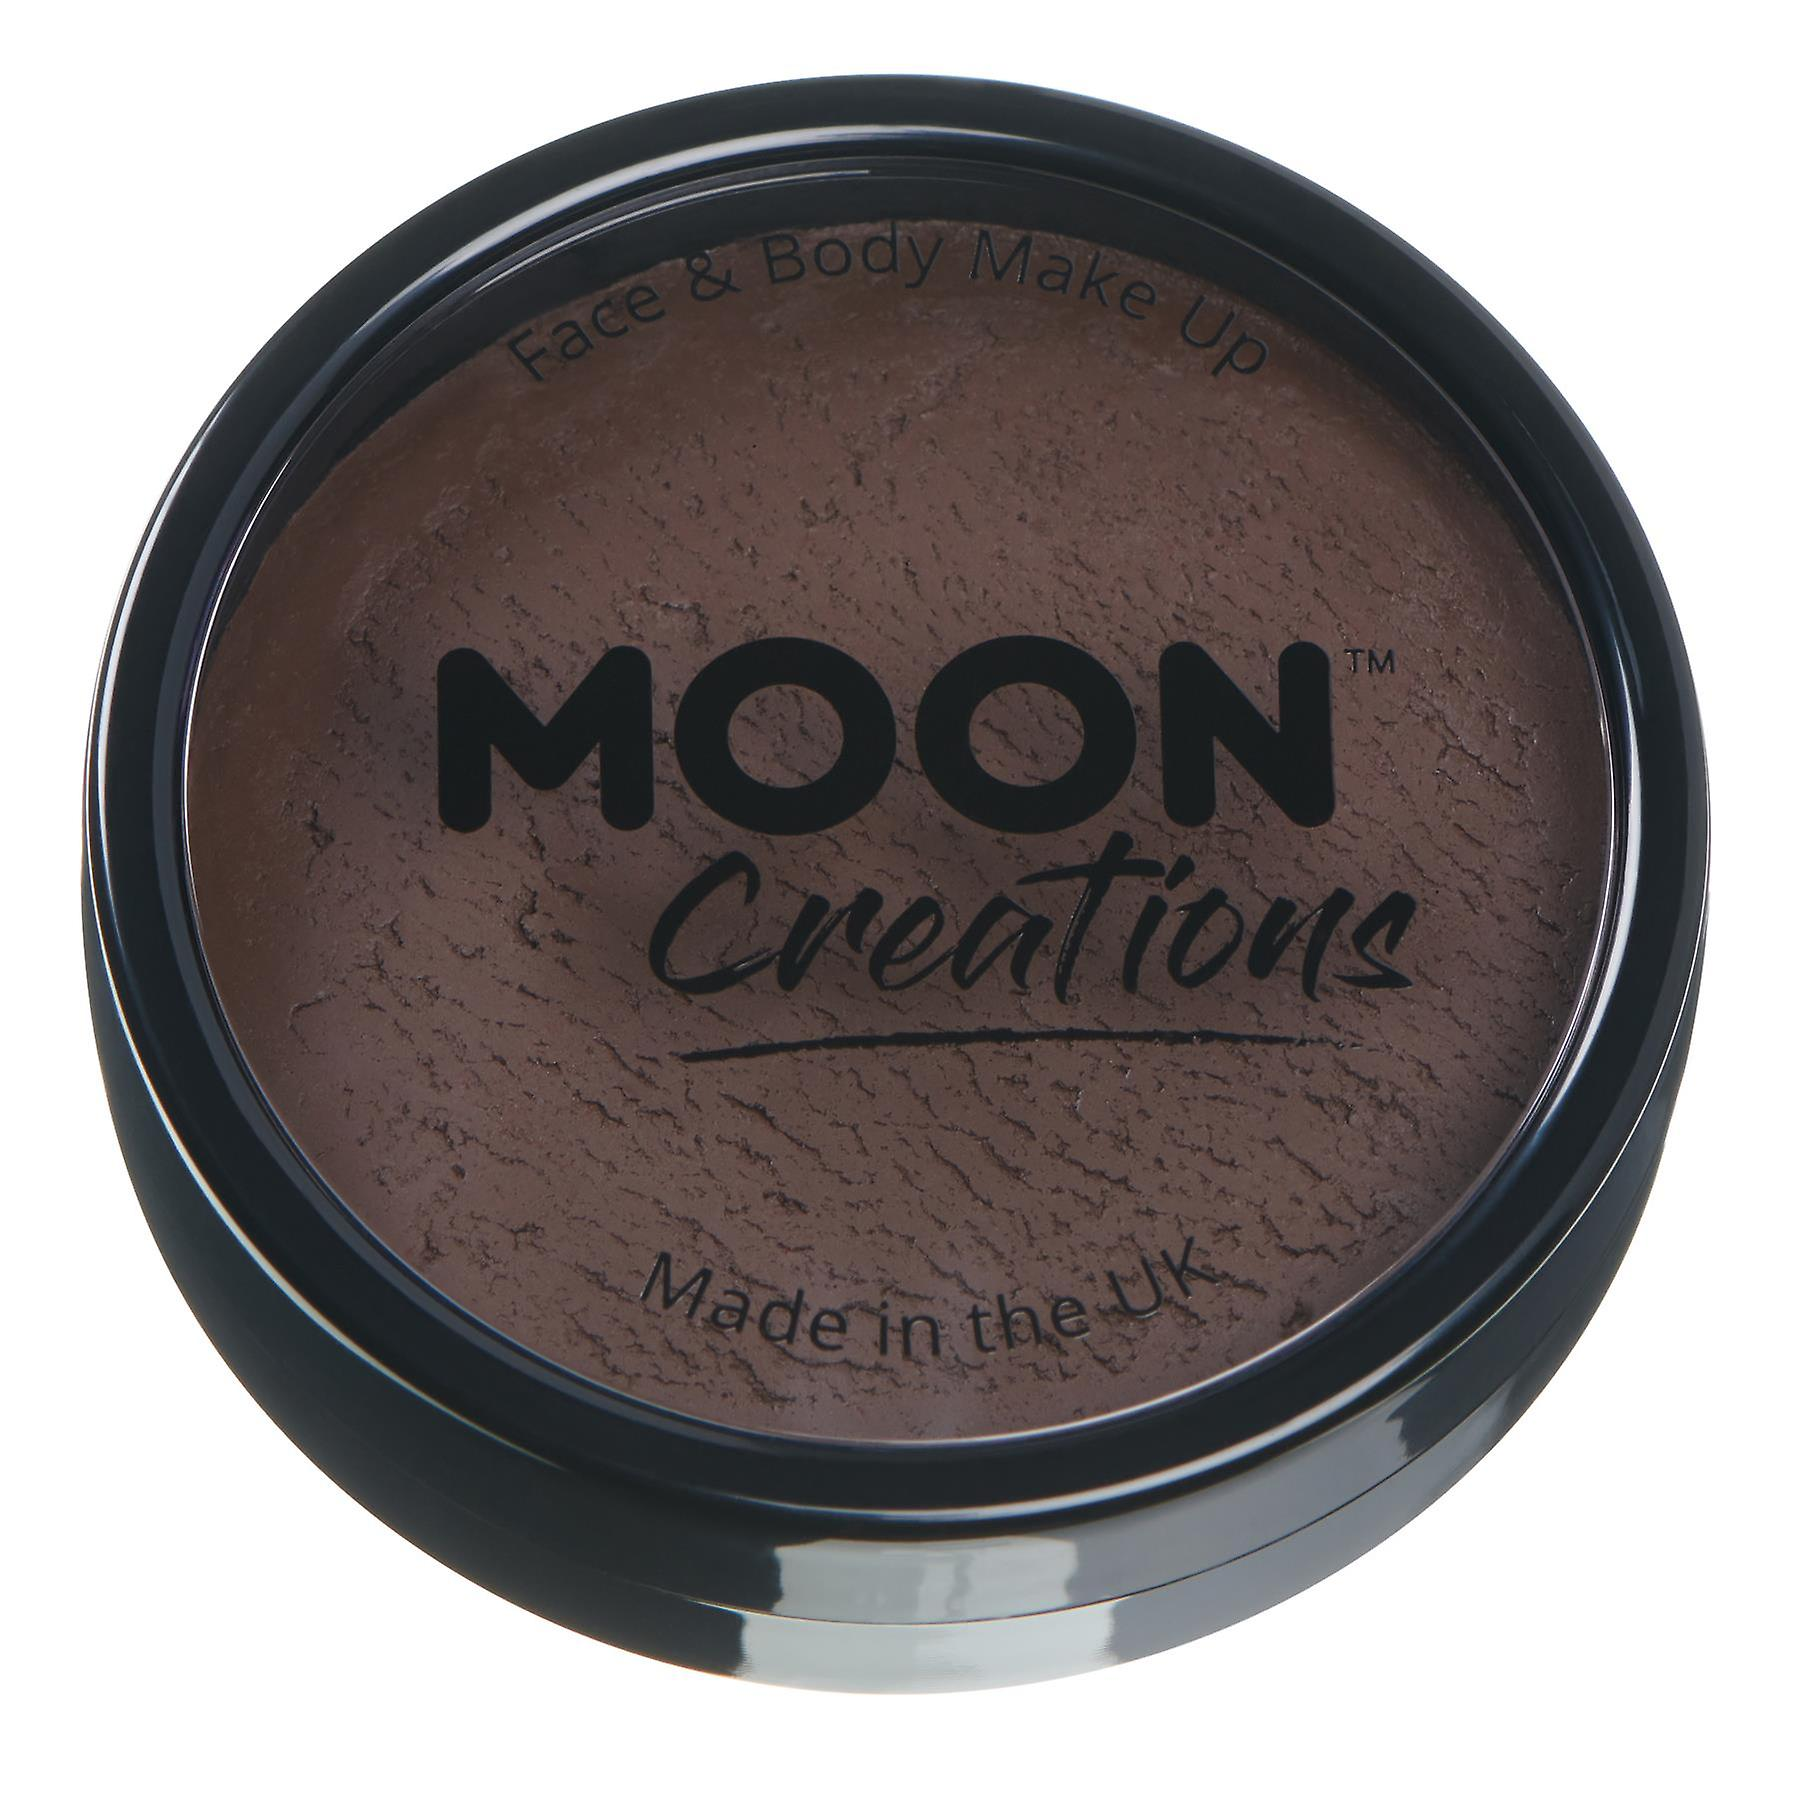 Moon Creations - Pro Face & Body Paint Cake Pots - Dark Brown